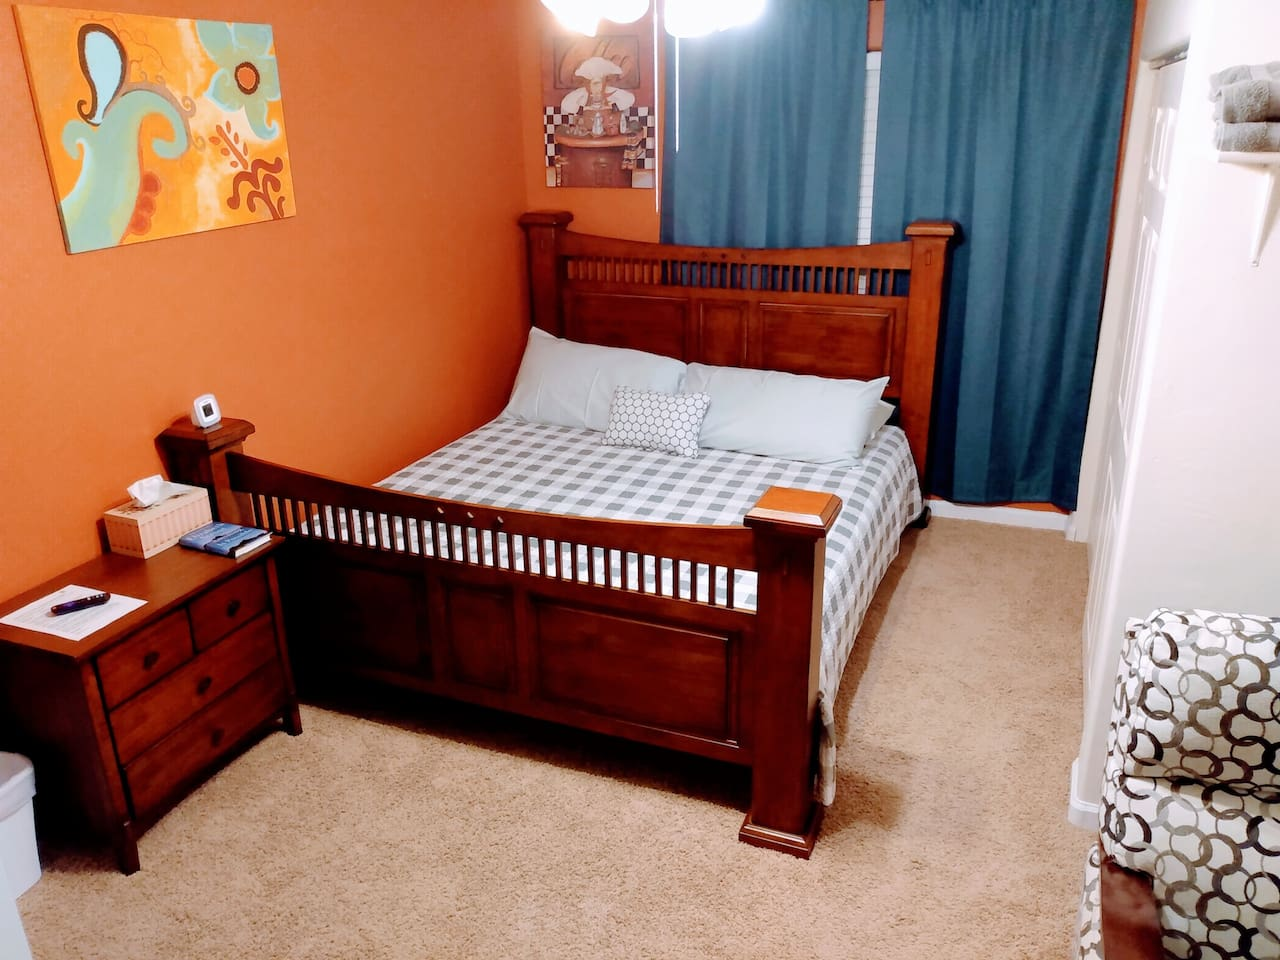 This is a Sealy Posturepedic California King Bed. In addition, a full-sized air mattress is available (on request).